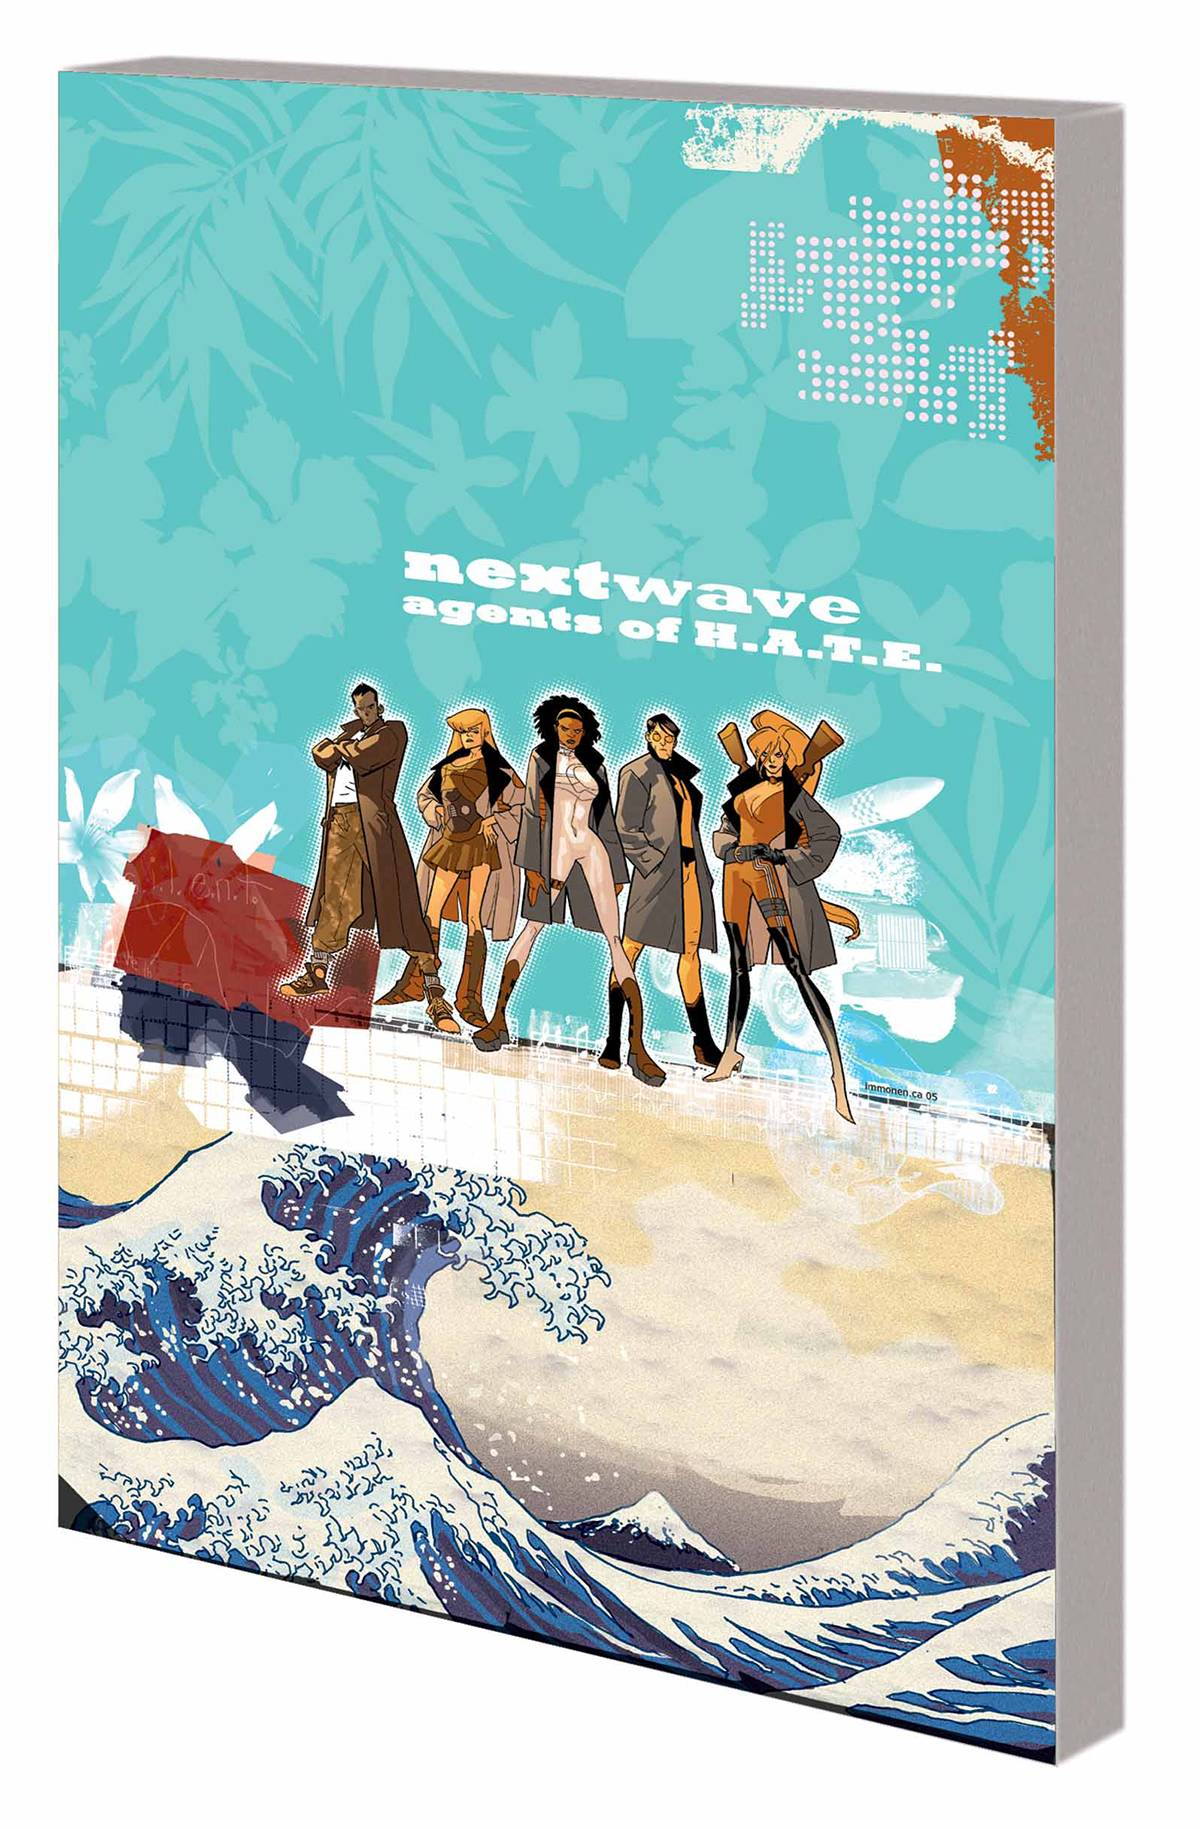 Nextwave Agents of Hate Tp Vol. 01 This is What They Want